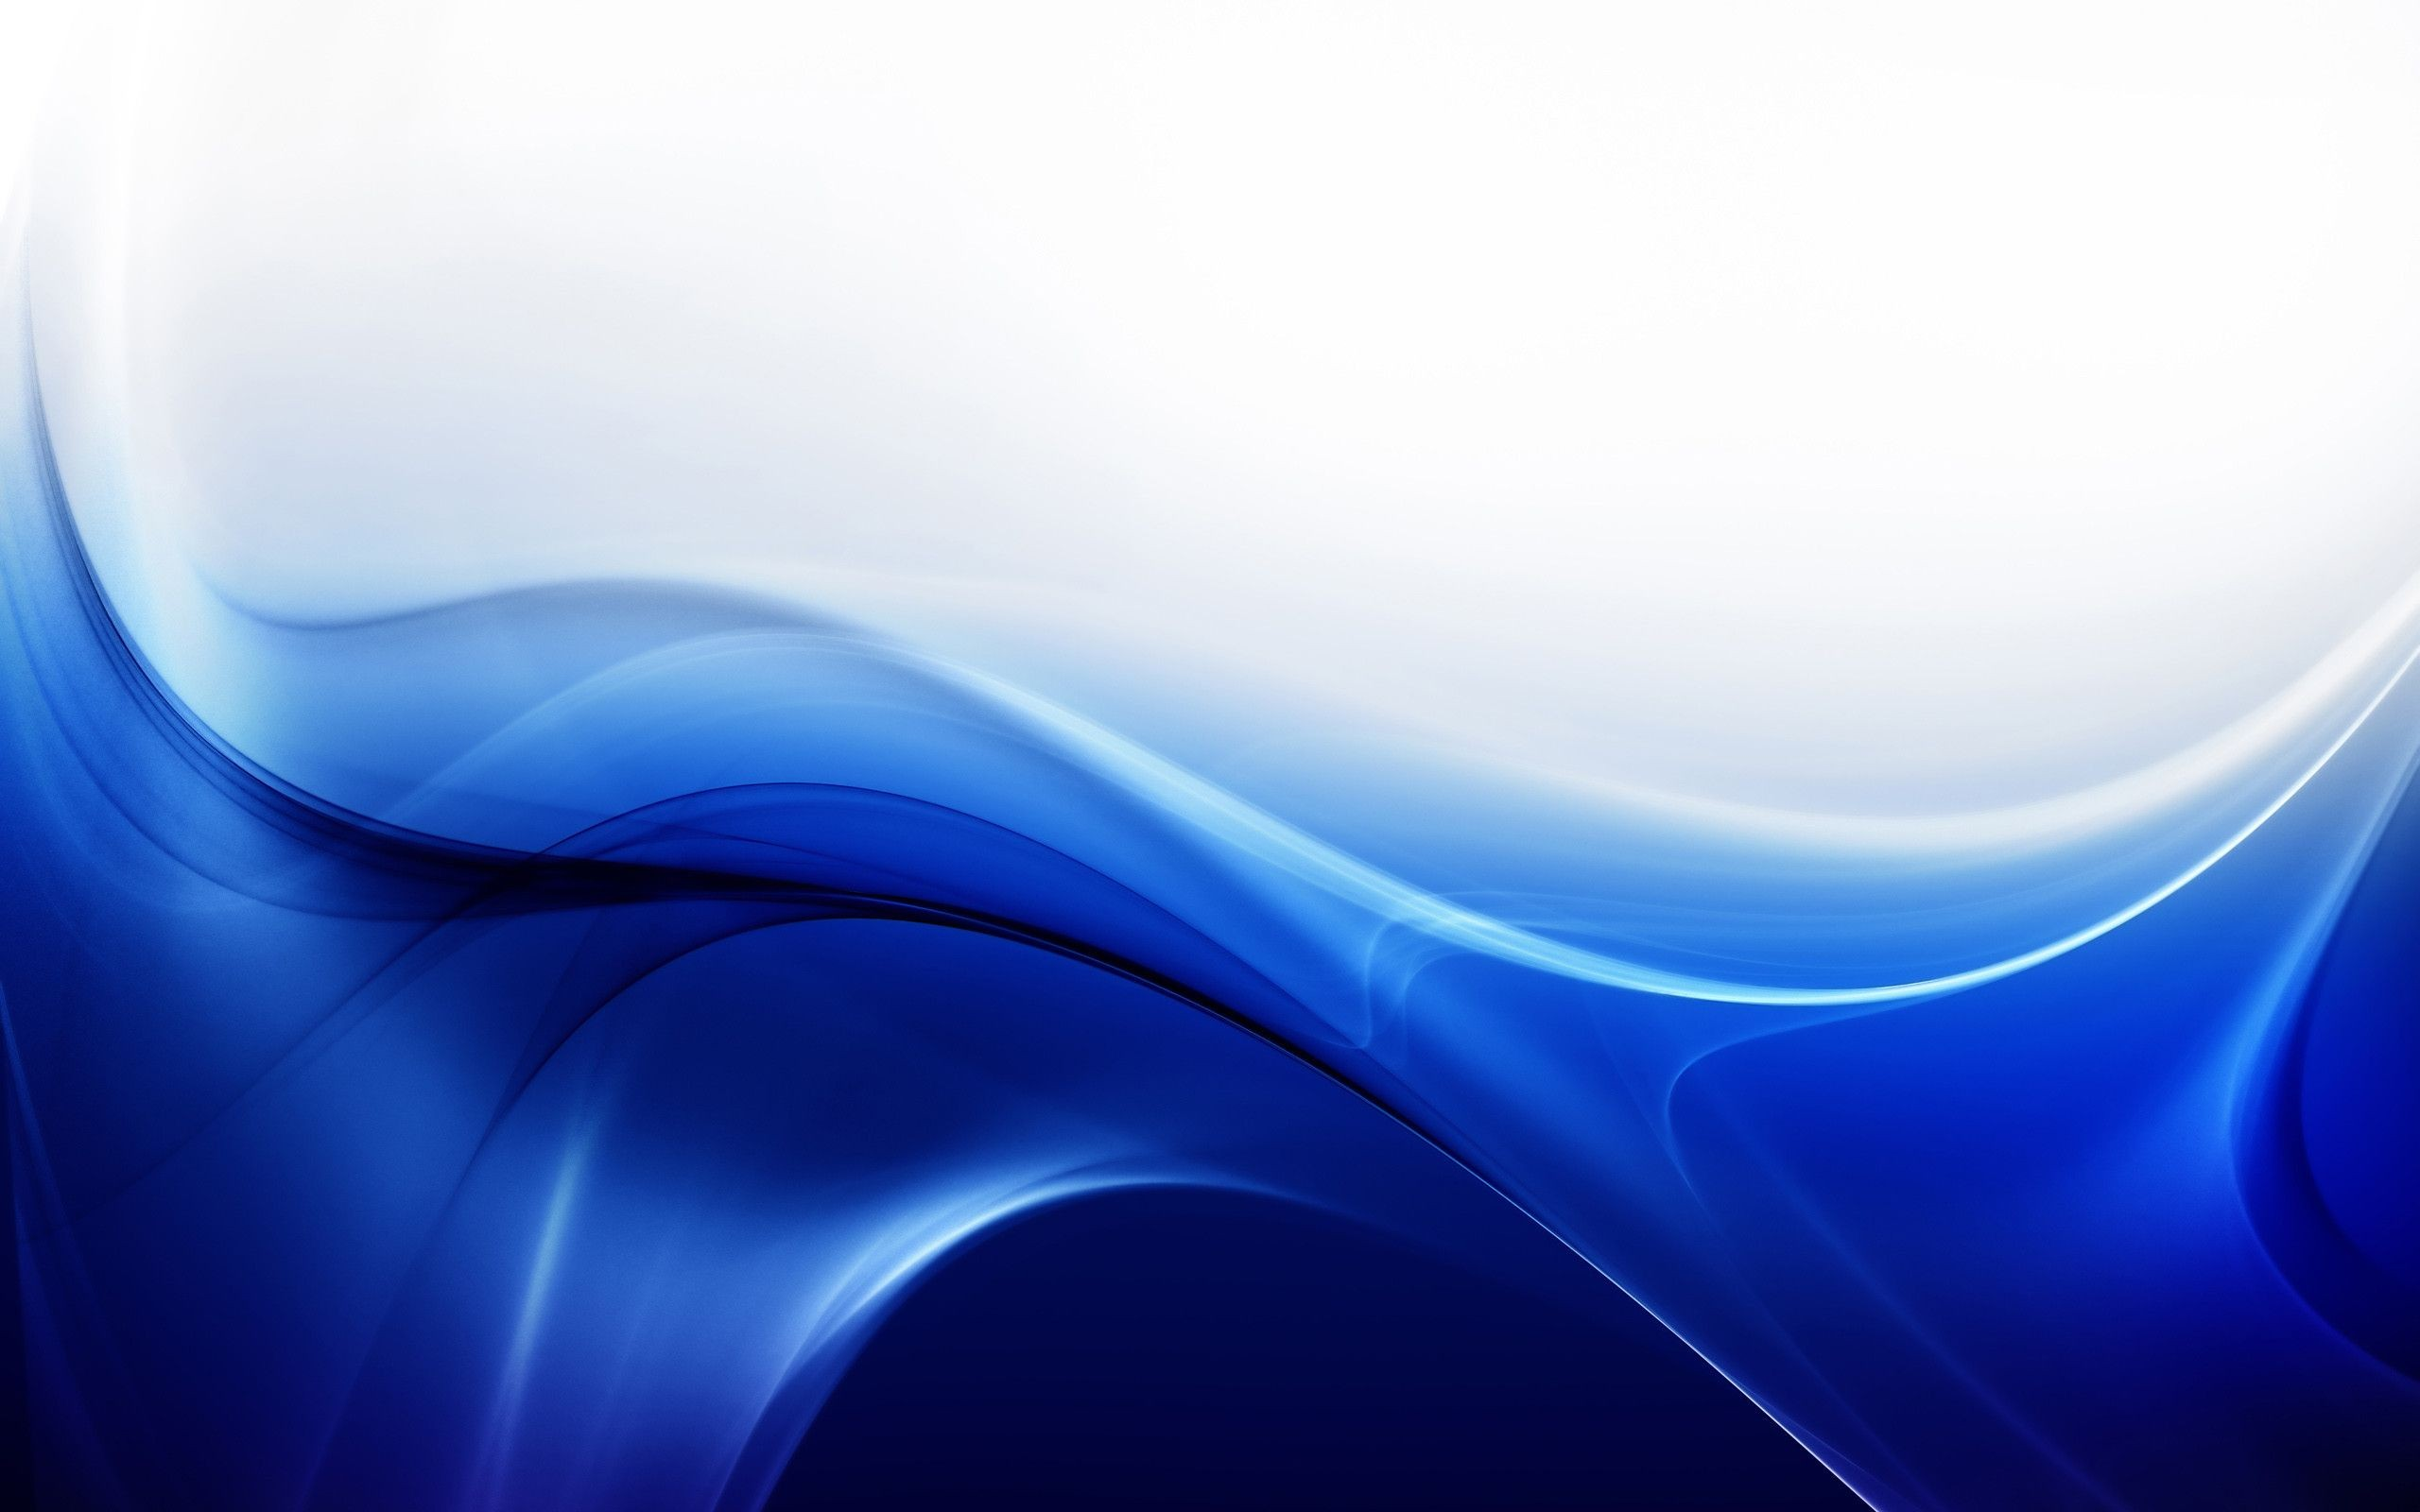 Blue abstract wallpaper download free awesome wallpapers for download voltagebd Choice Image